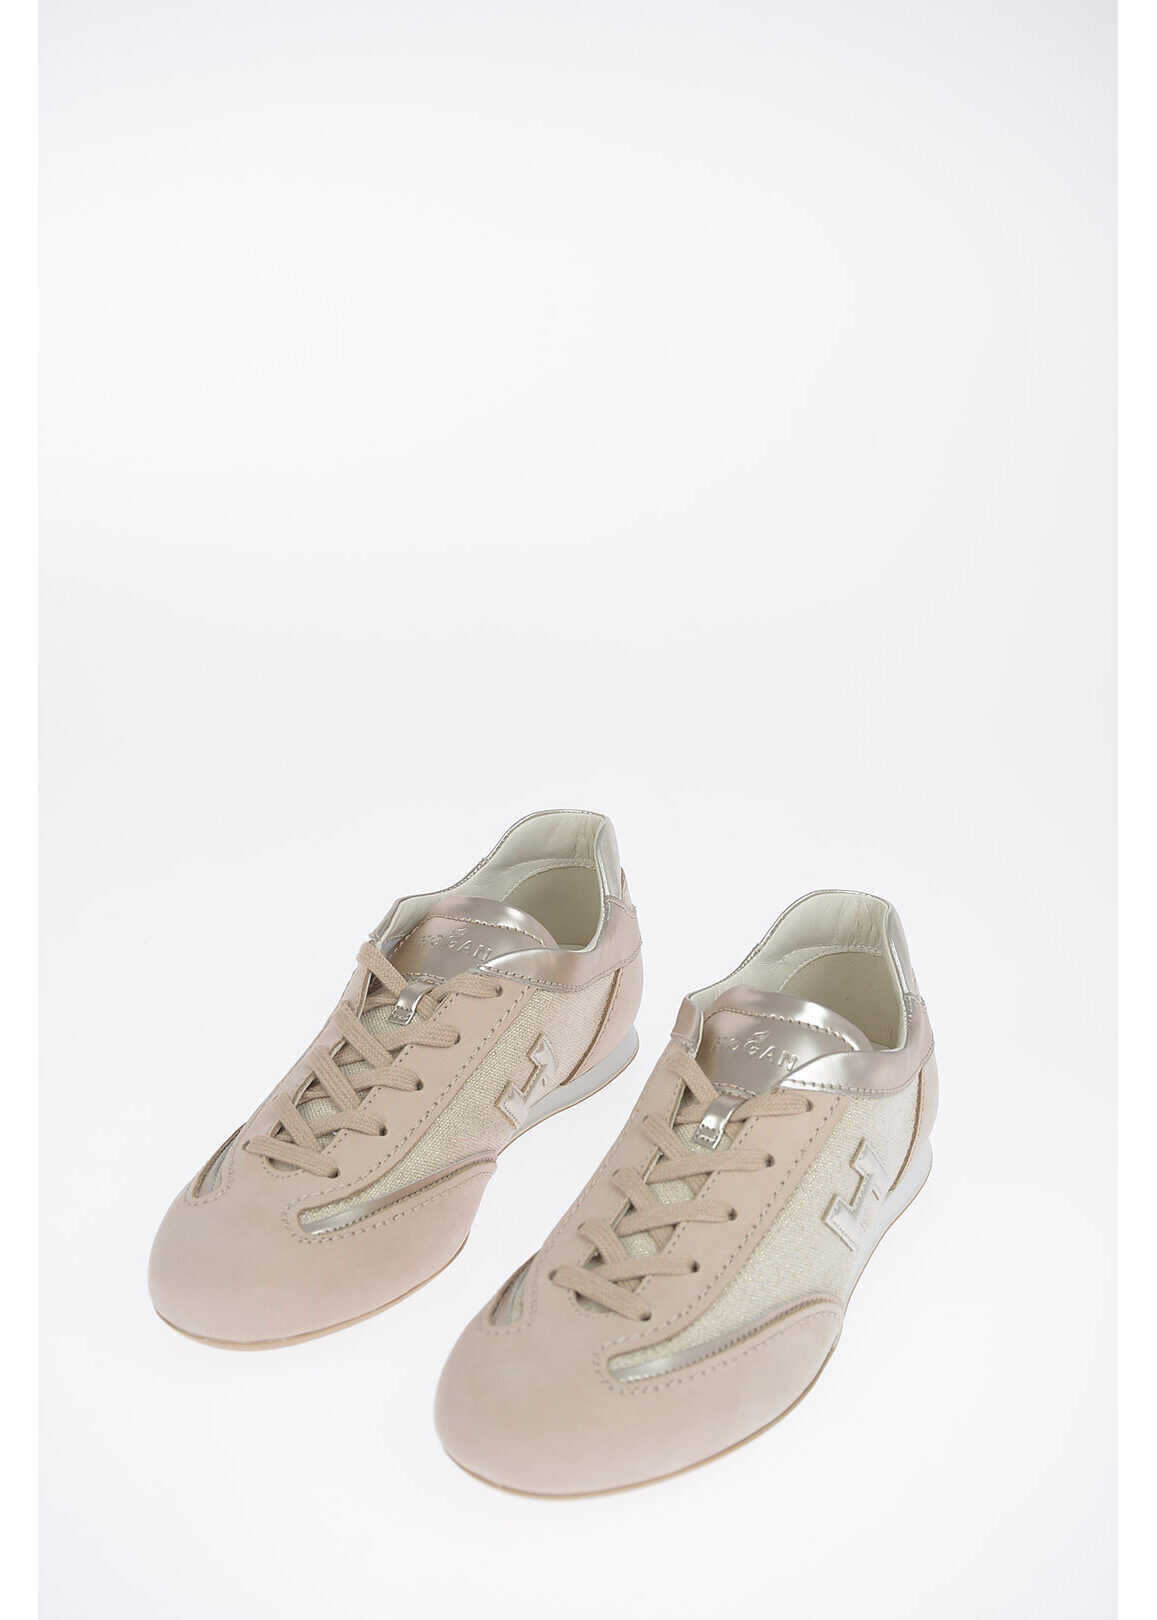 Hogan Fabric and Leather OLYMPIA Sneakers BEIGE